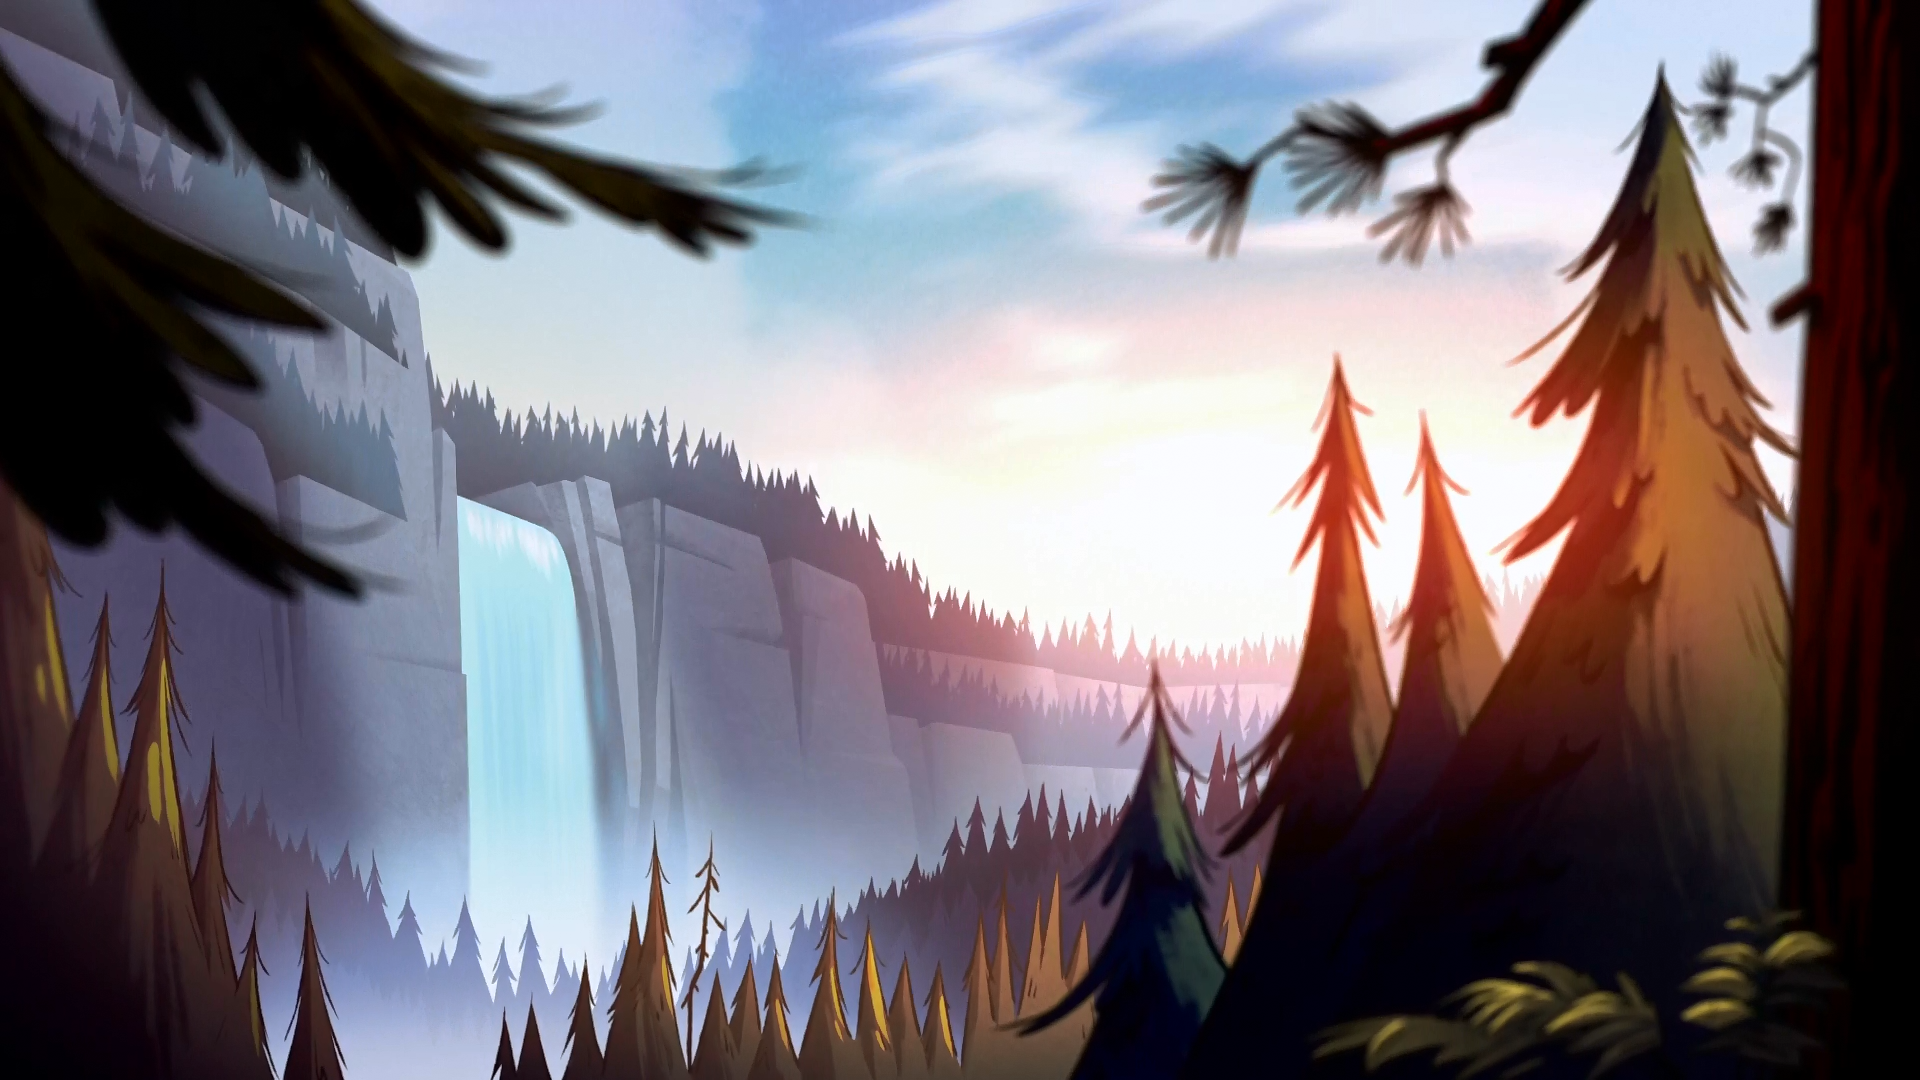 gravity falls wallpaper tumblr backgrounds - photo #17